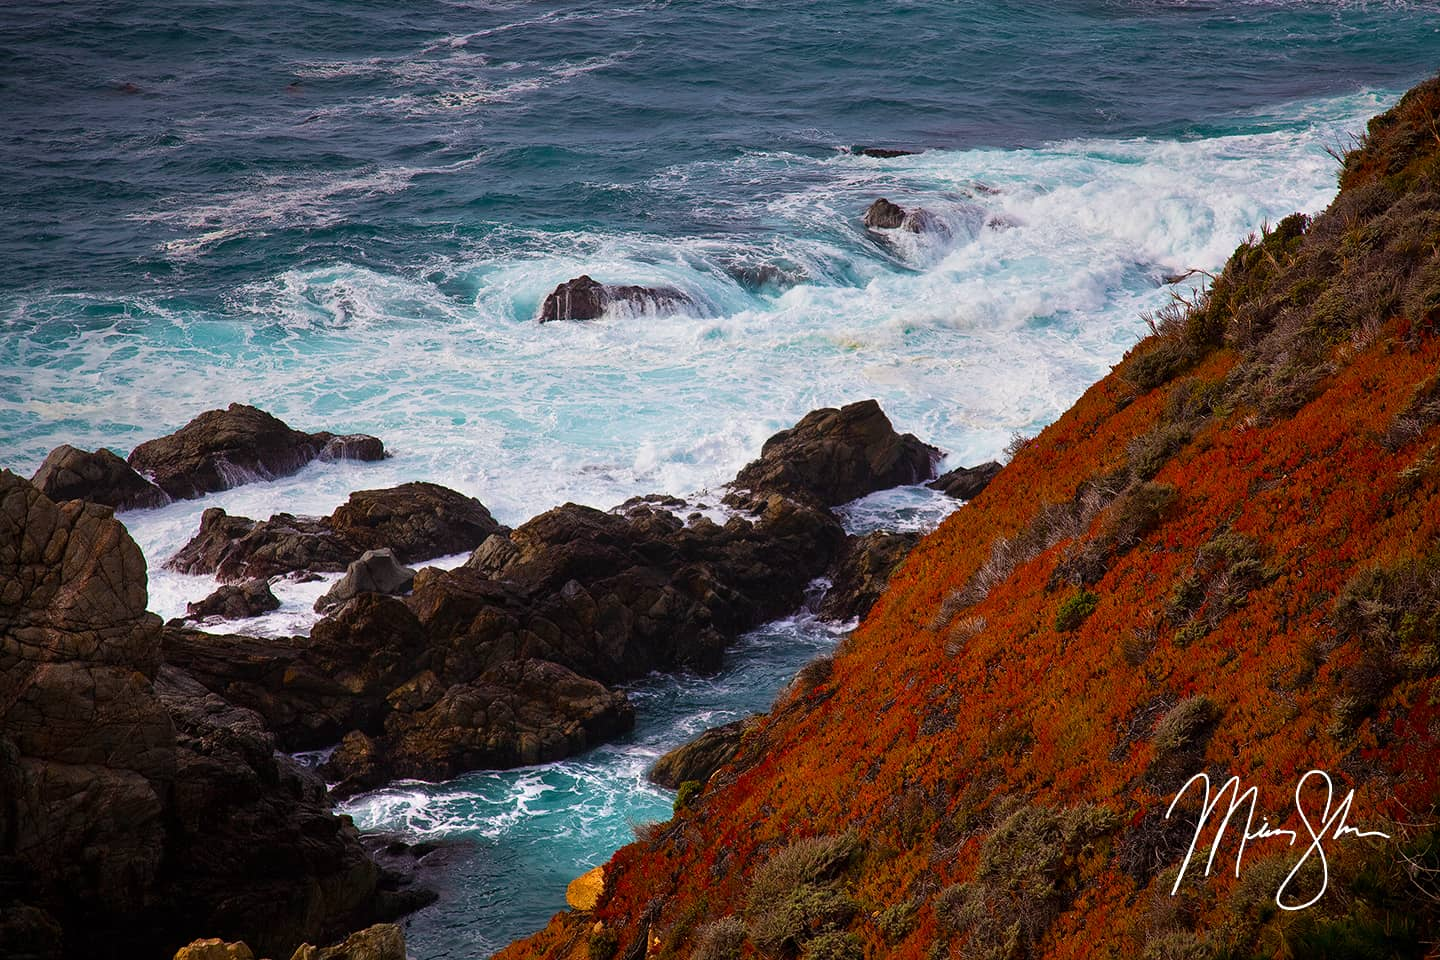 Open edition fine art print of Red and Blue from Mickey Shannon Photography. Location: Big Sur, California